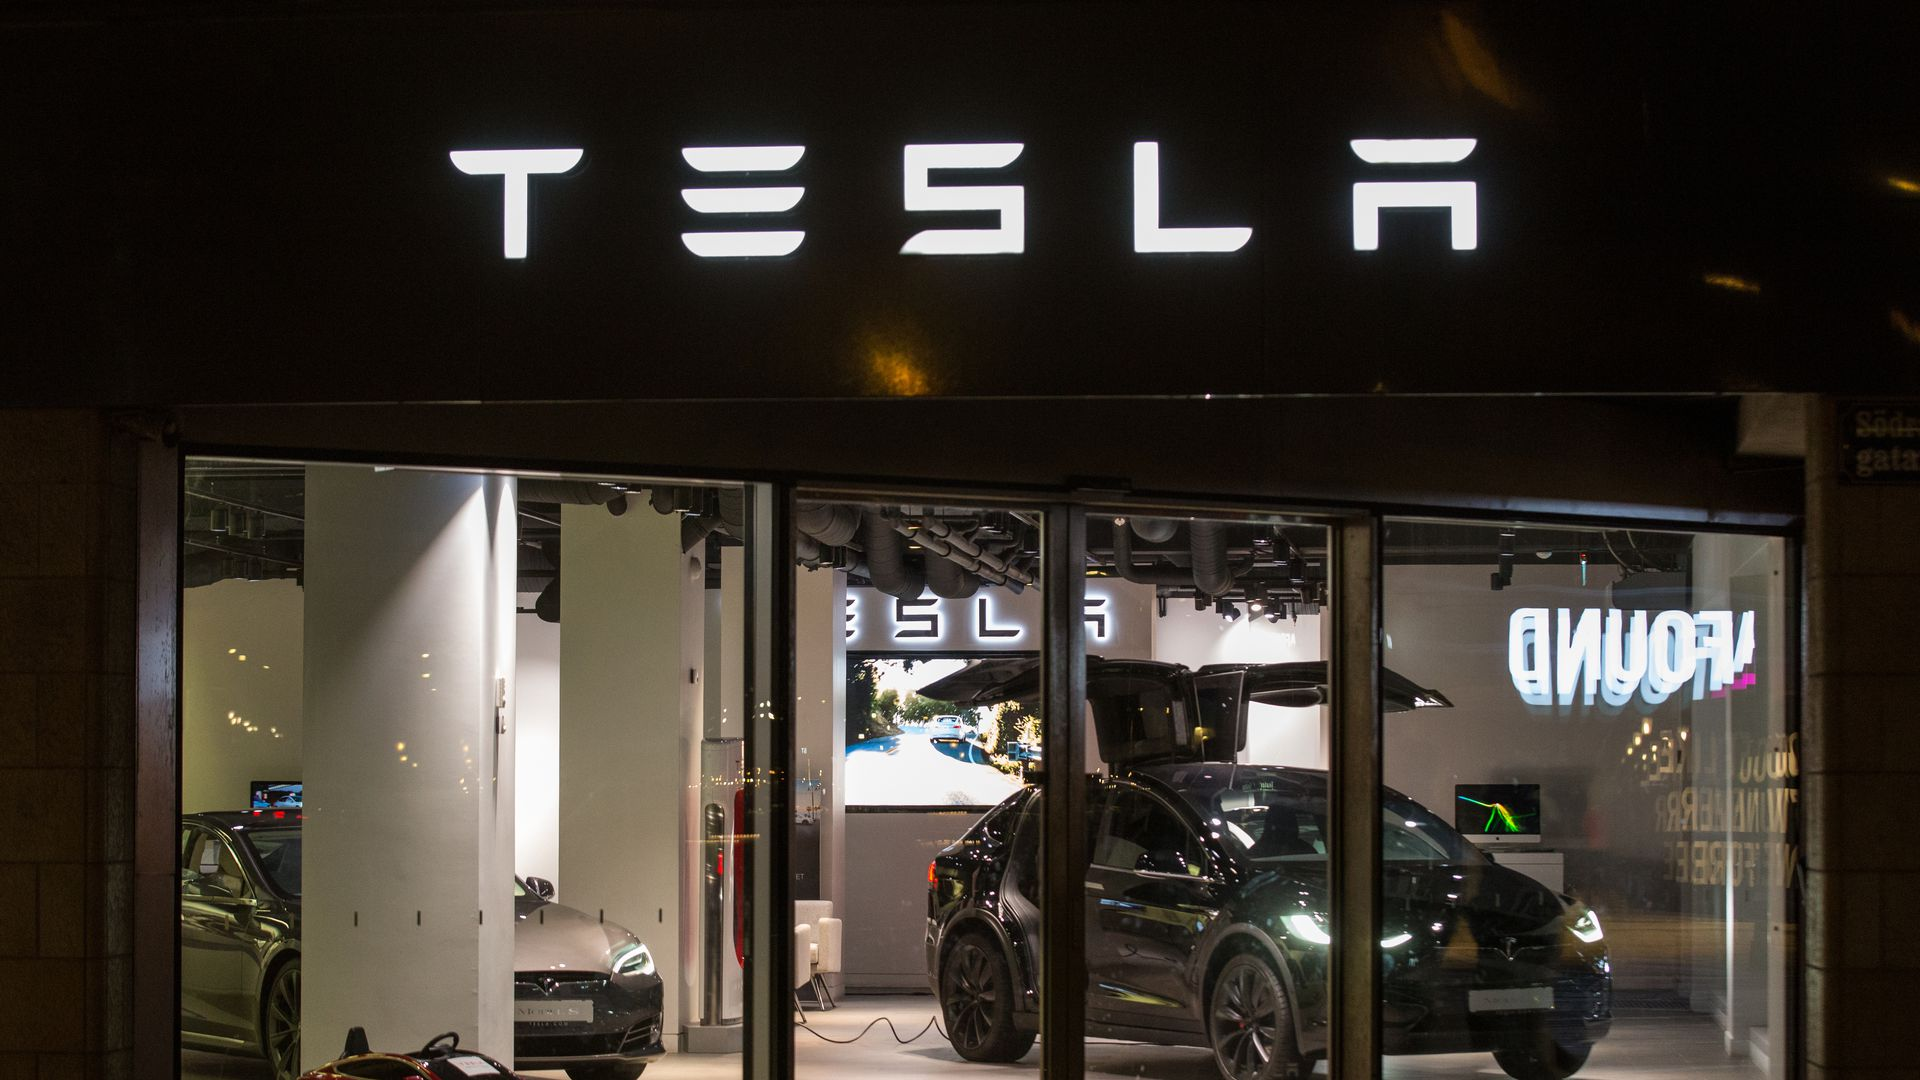 Photo of Tesla display at story lit up at nighttime